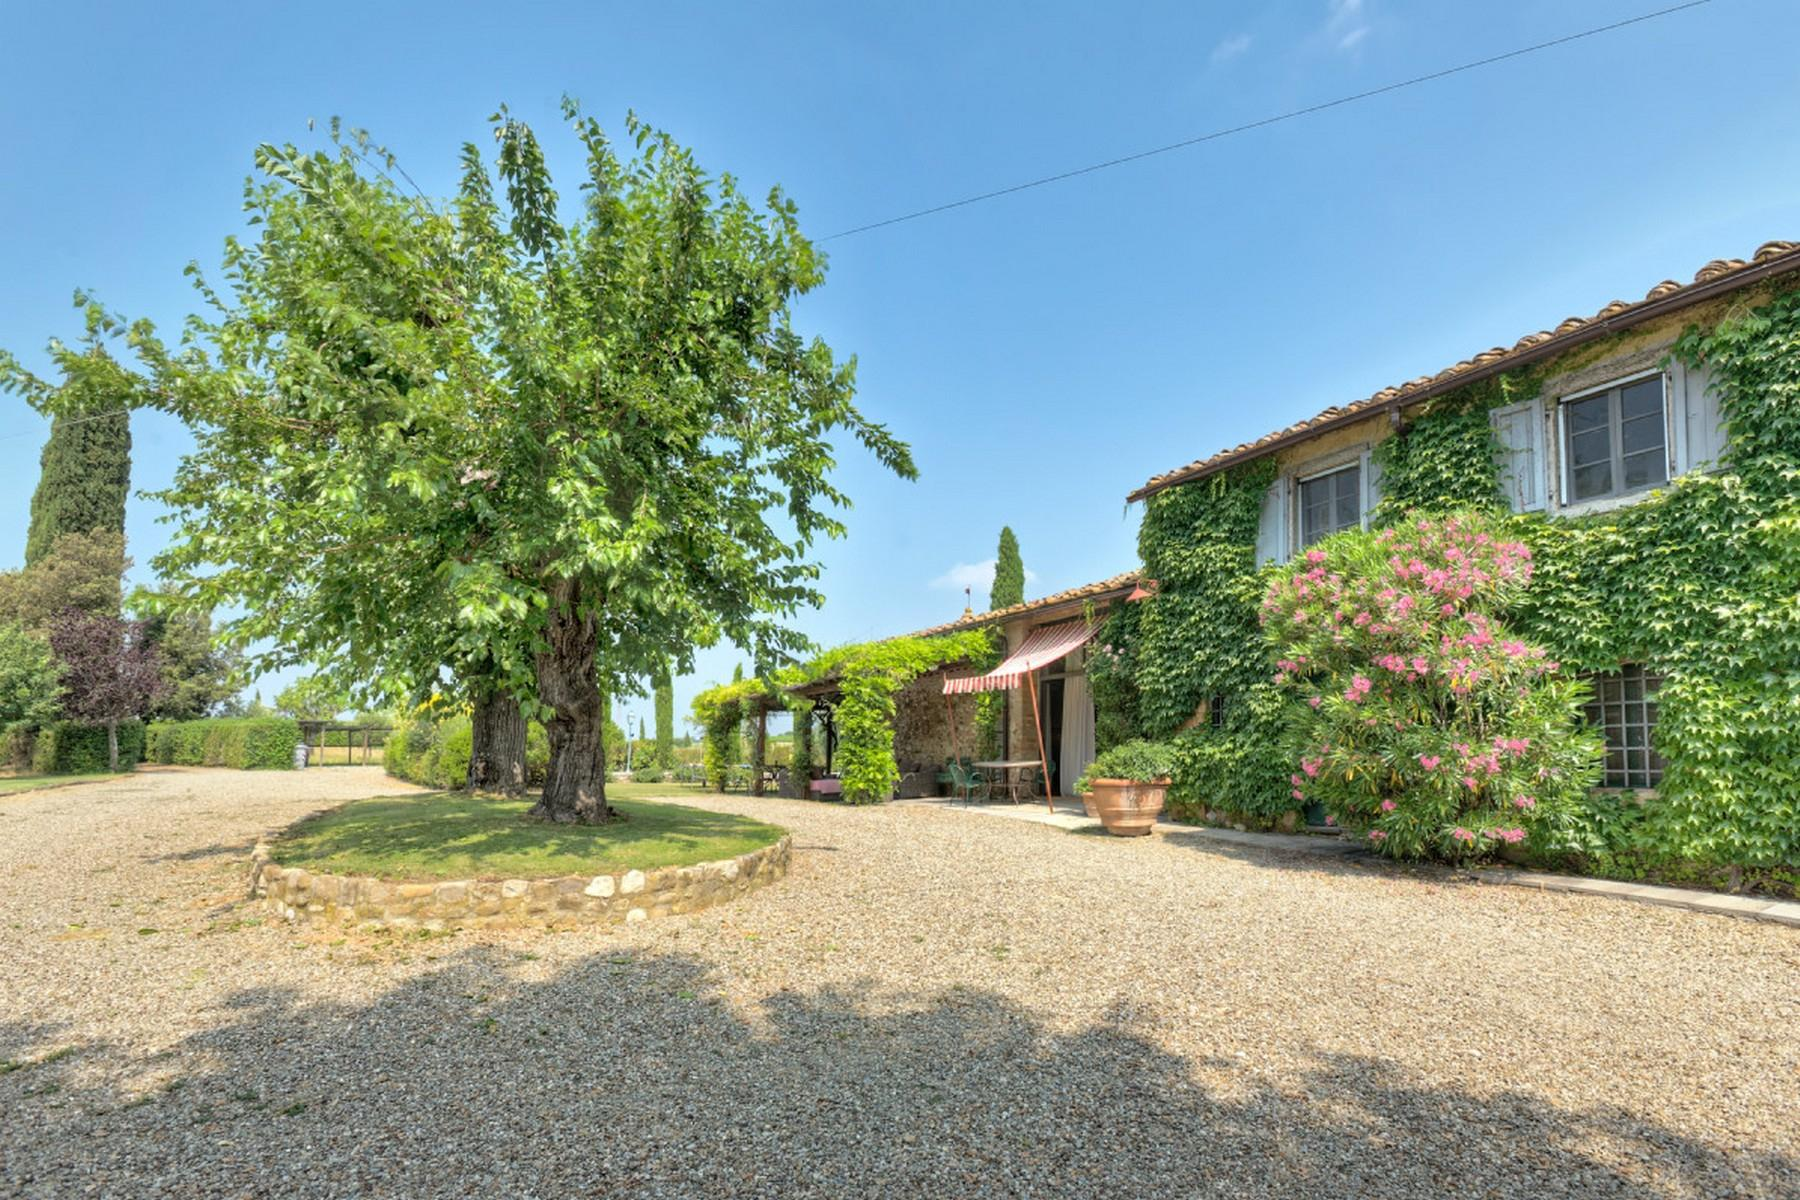 State-of-the-art rustic villa set in Florentine Chianti - 1